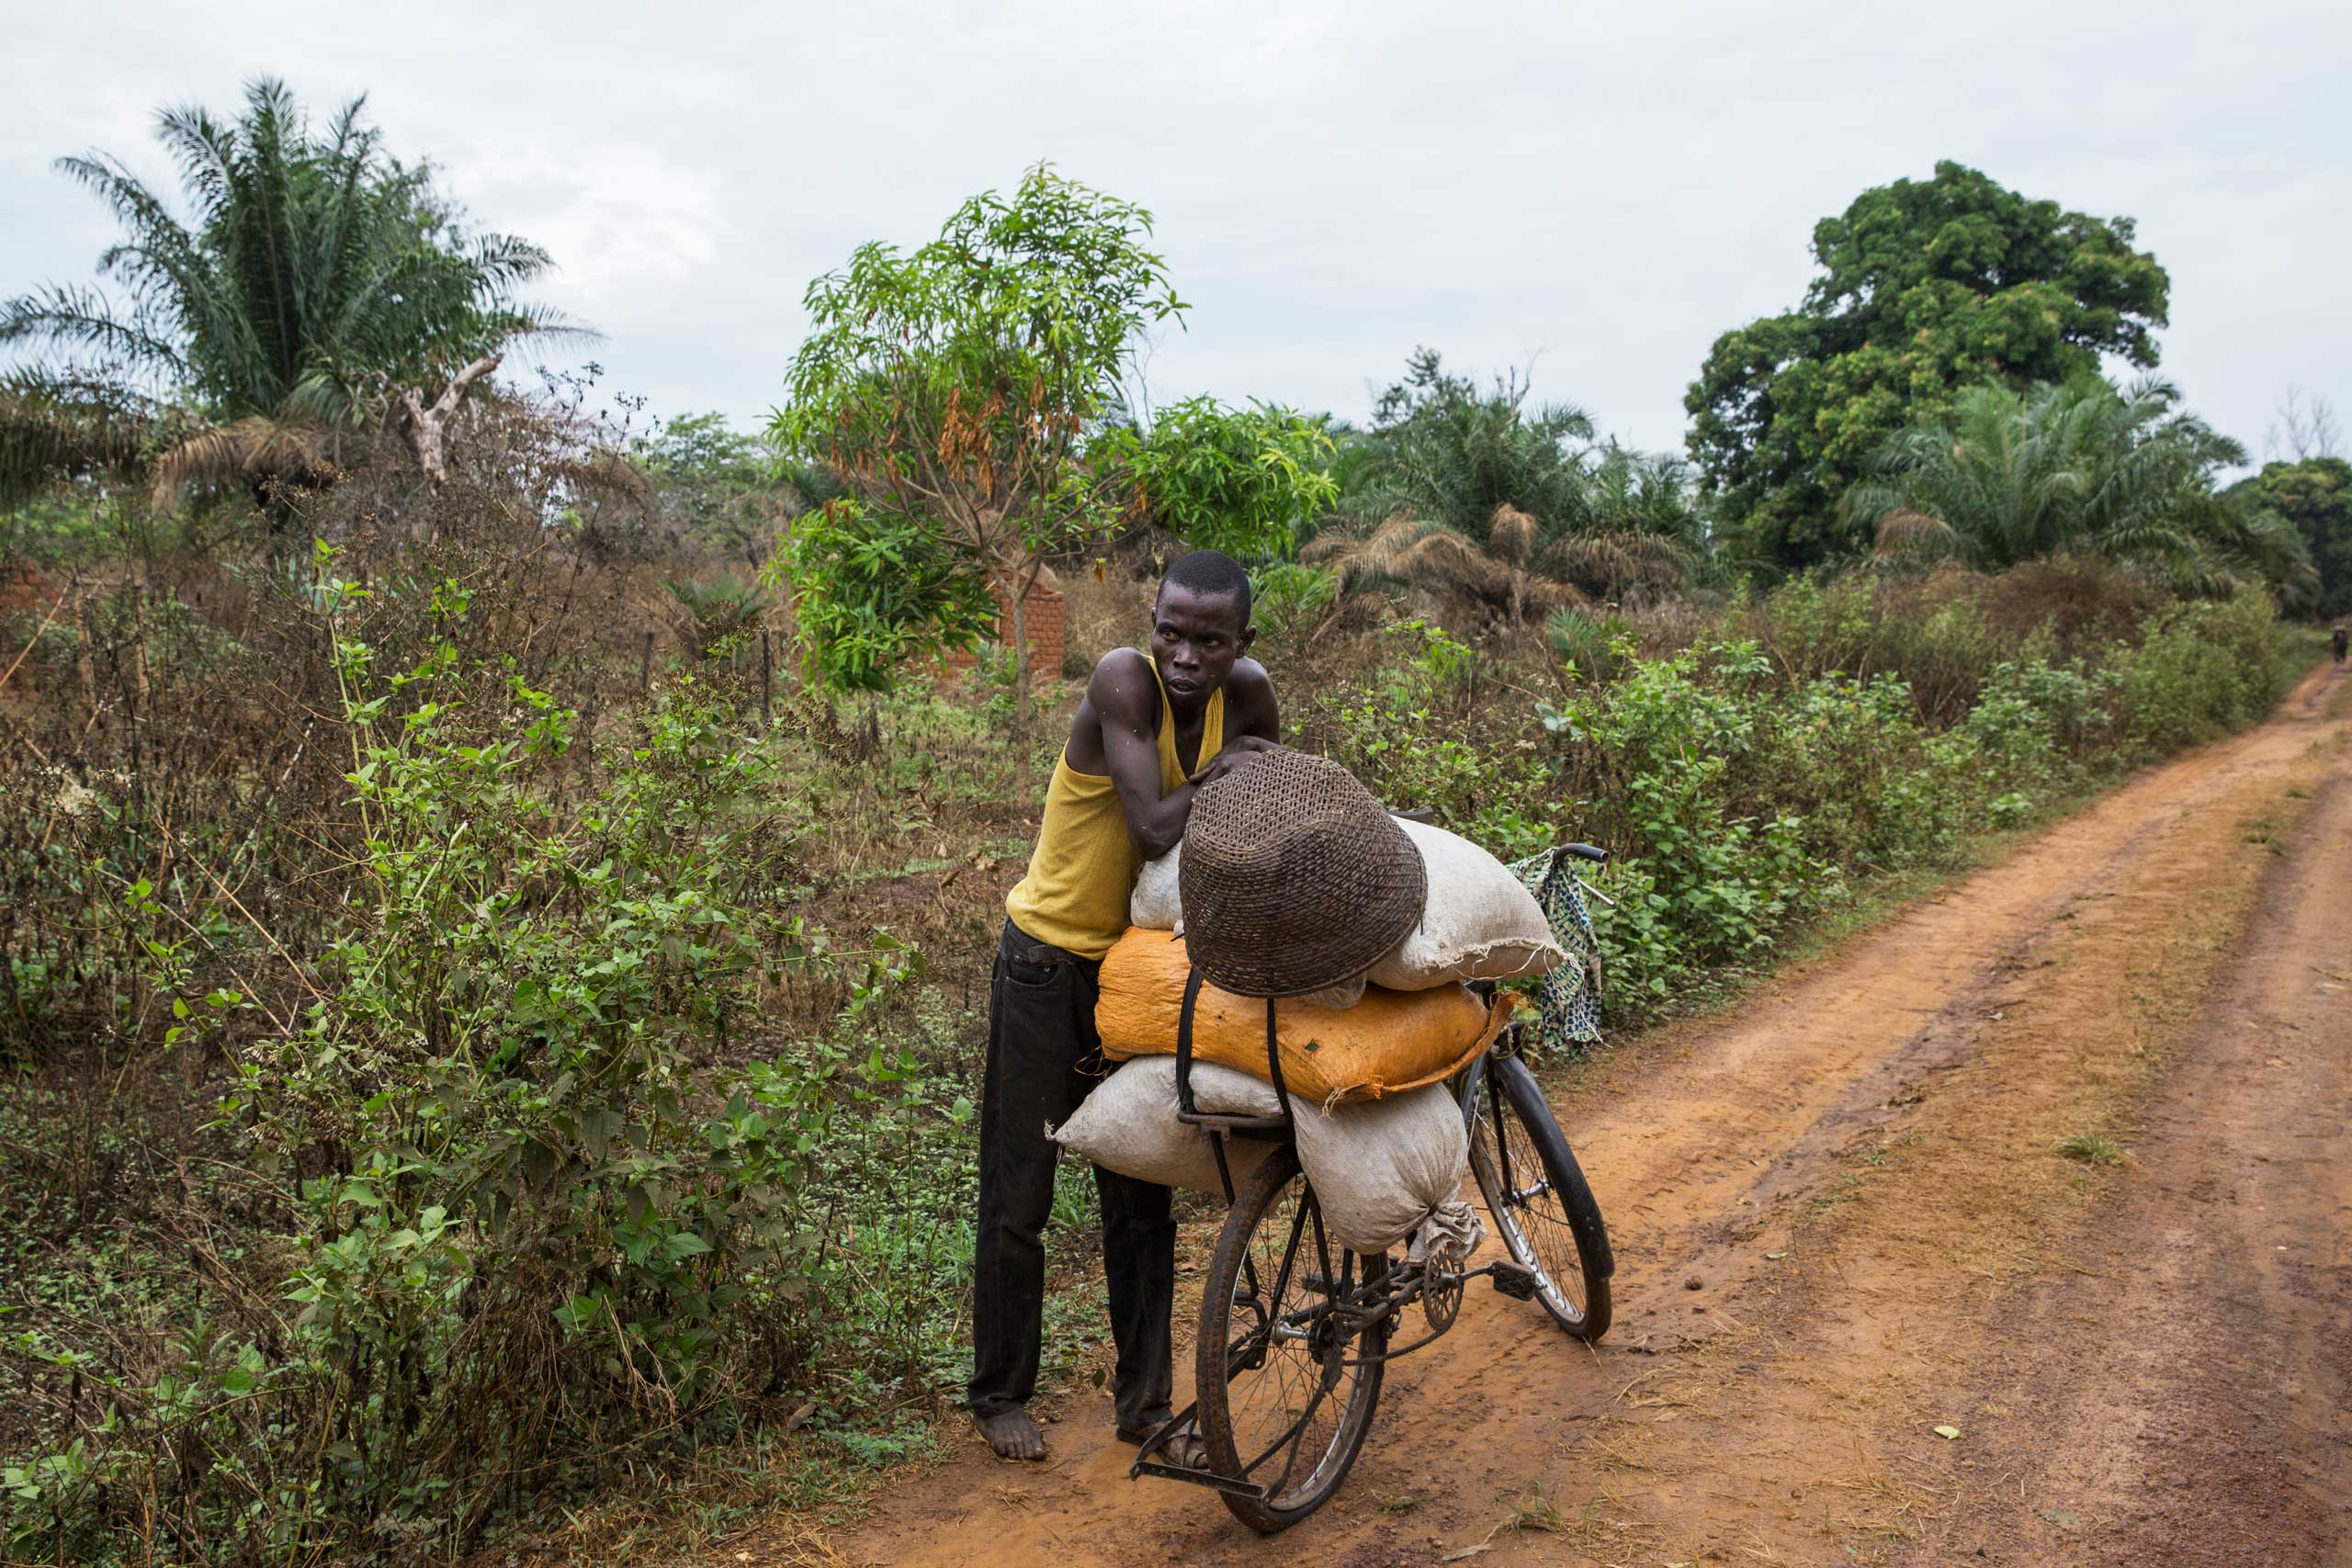 A man carries coffee on his bicycle to sell in Ngakaobo, Central African Republic.